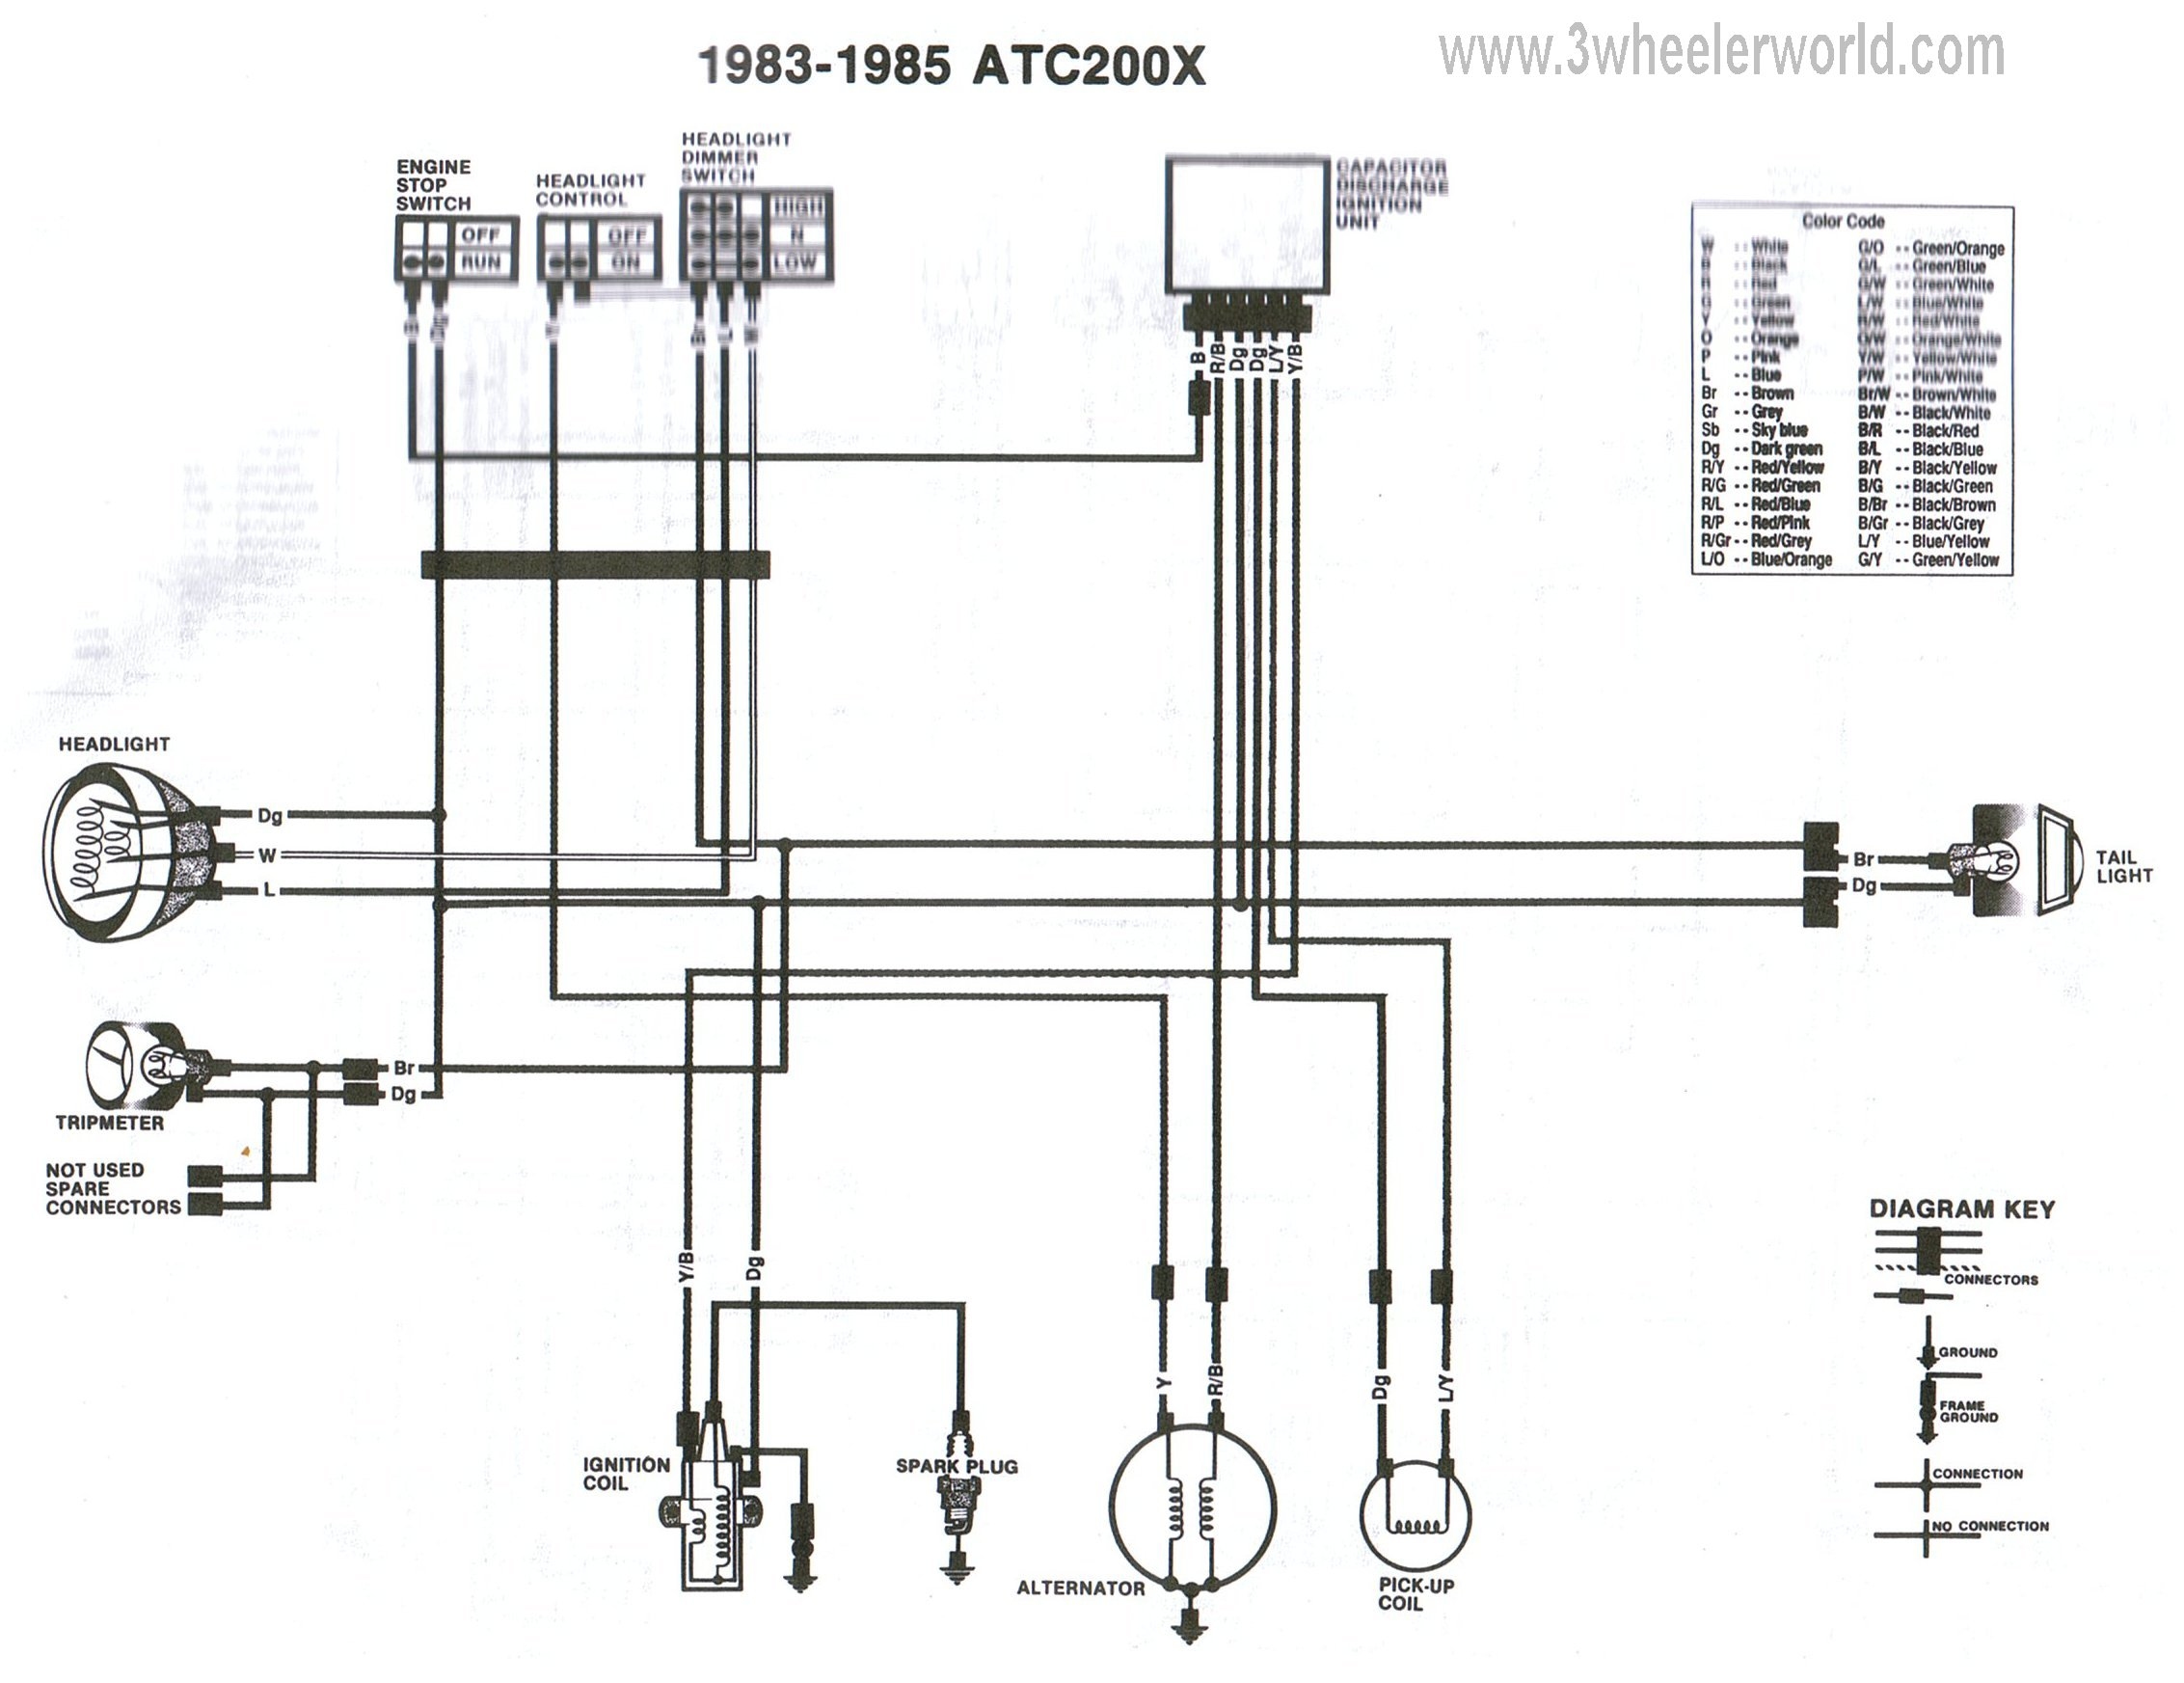 1984 Honda Big Red 200 Wiring Diagram, 1984, Free Engine